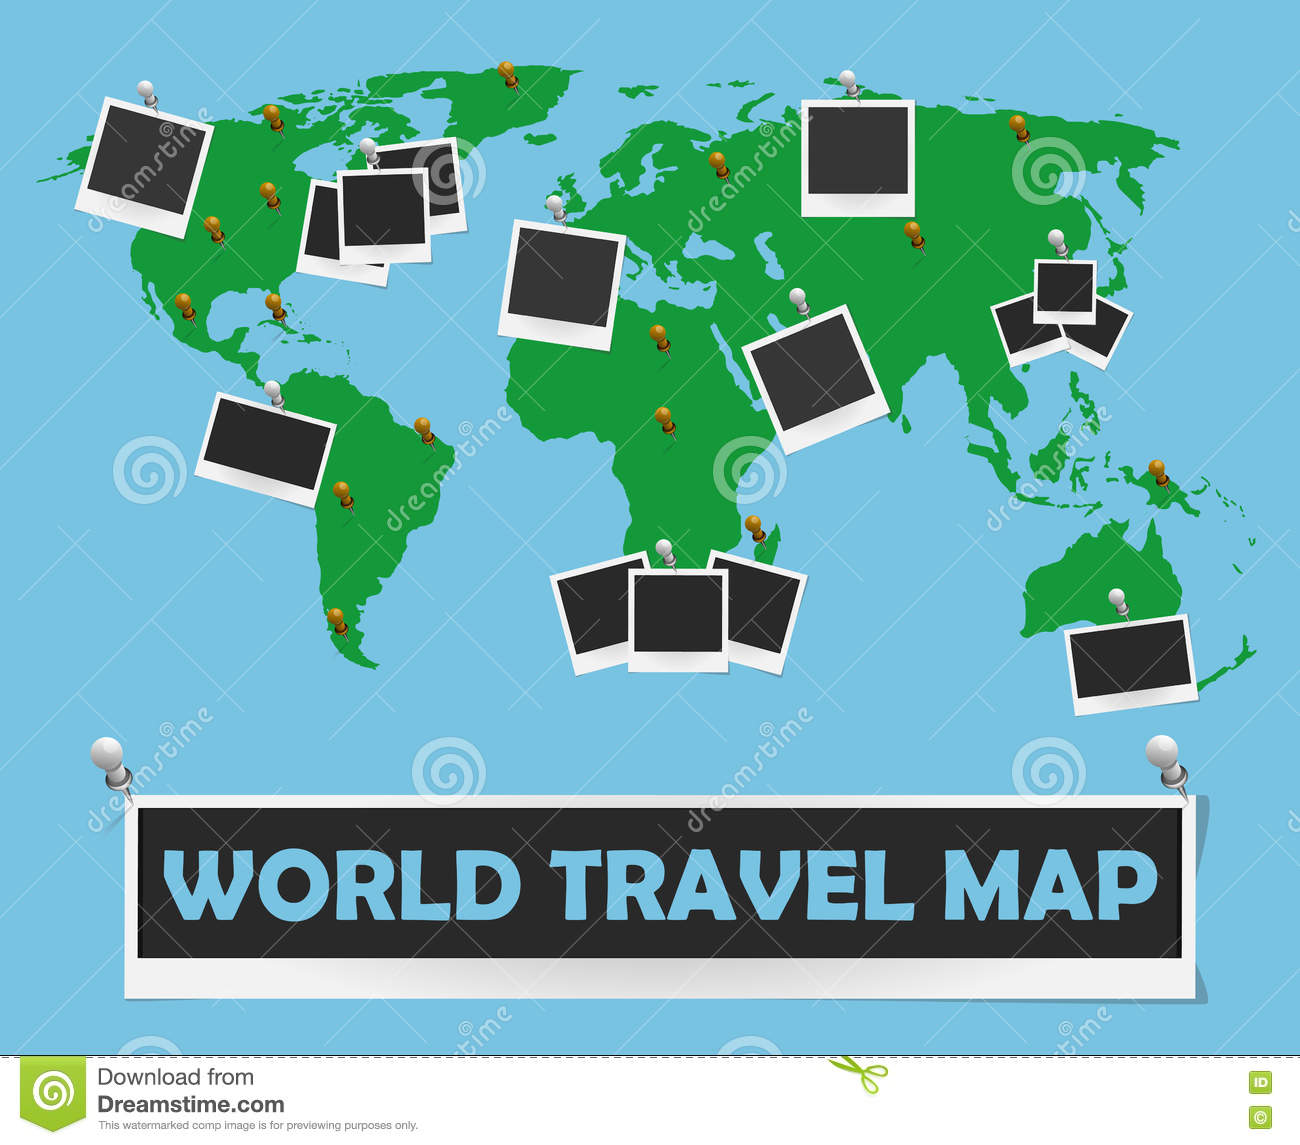 World Travel Map With Photo Frames And Pins Journey Concept Design - World travel map with pins and frame